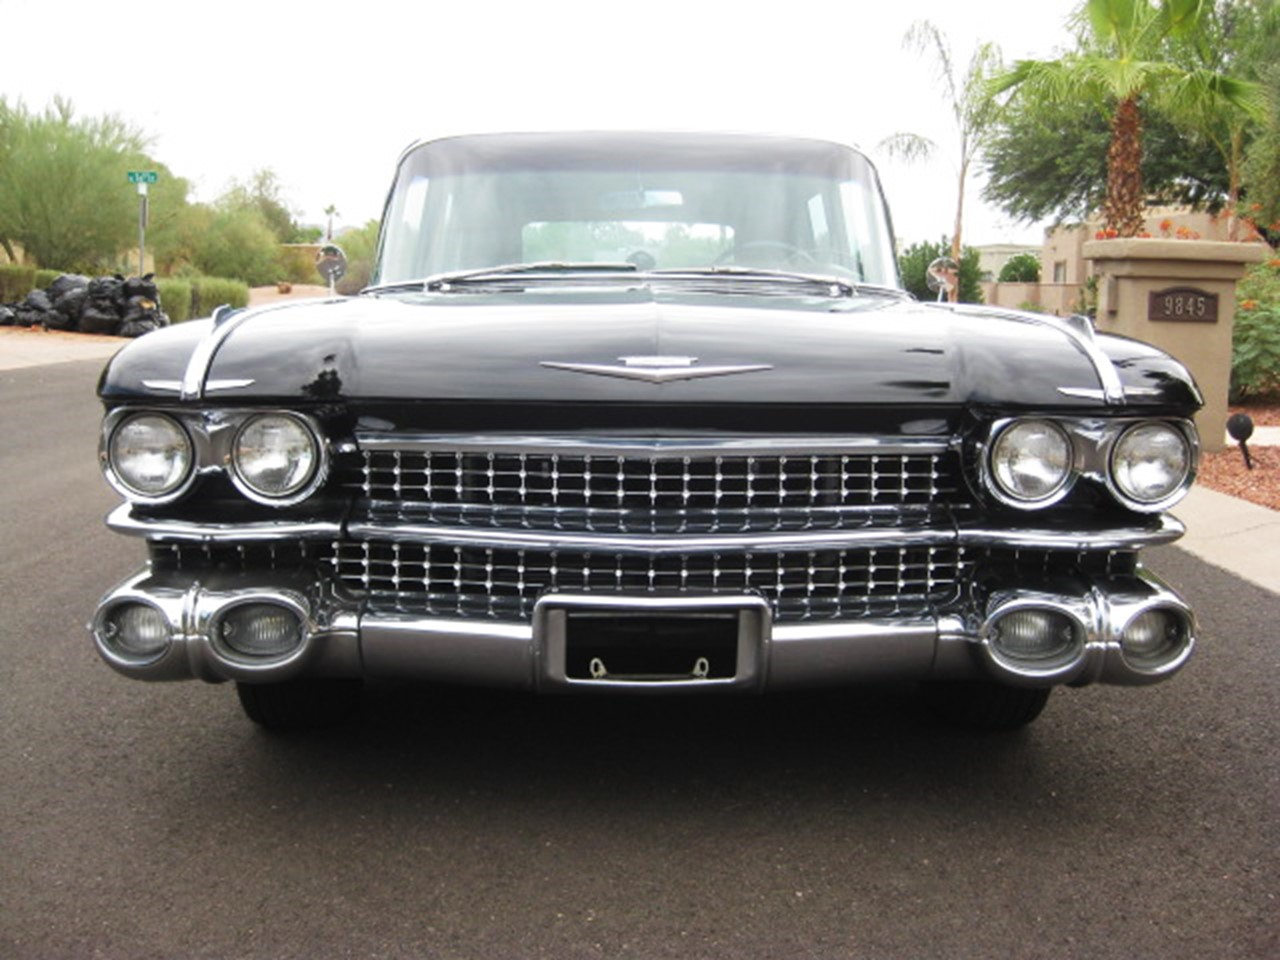 1959 Fleetwood Series Seventy-Five 1